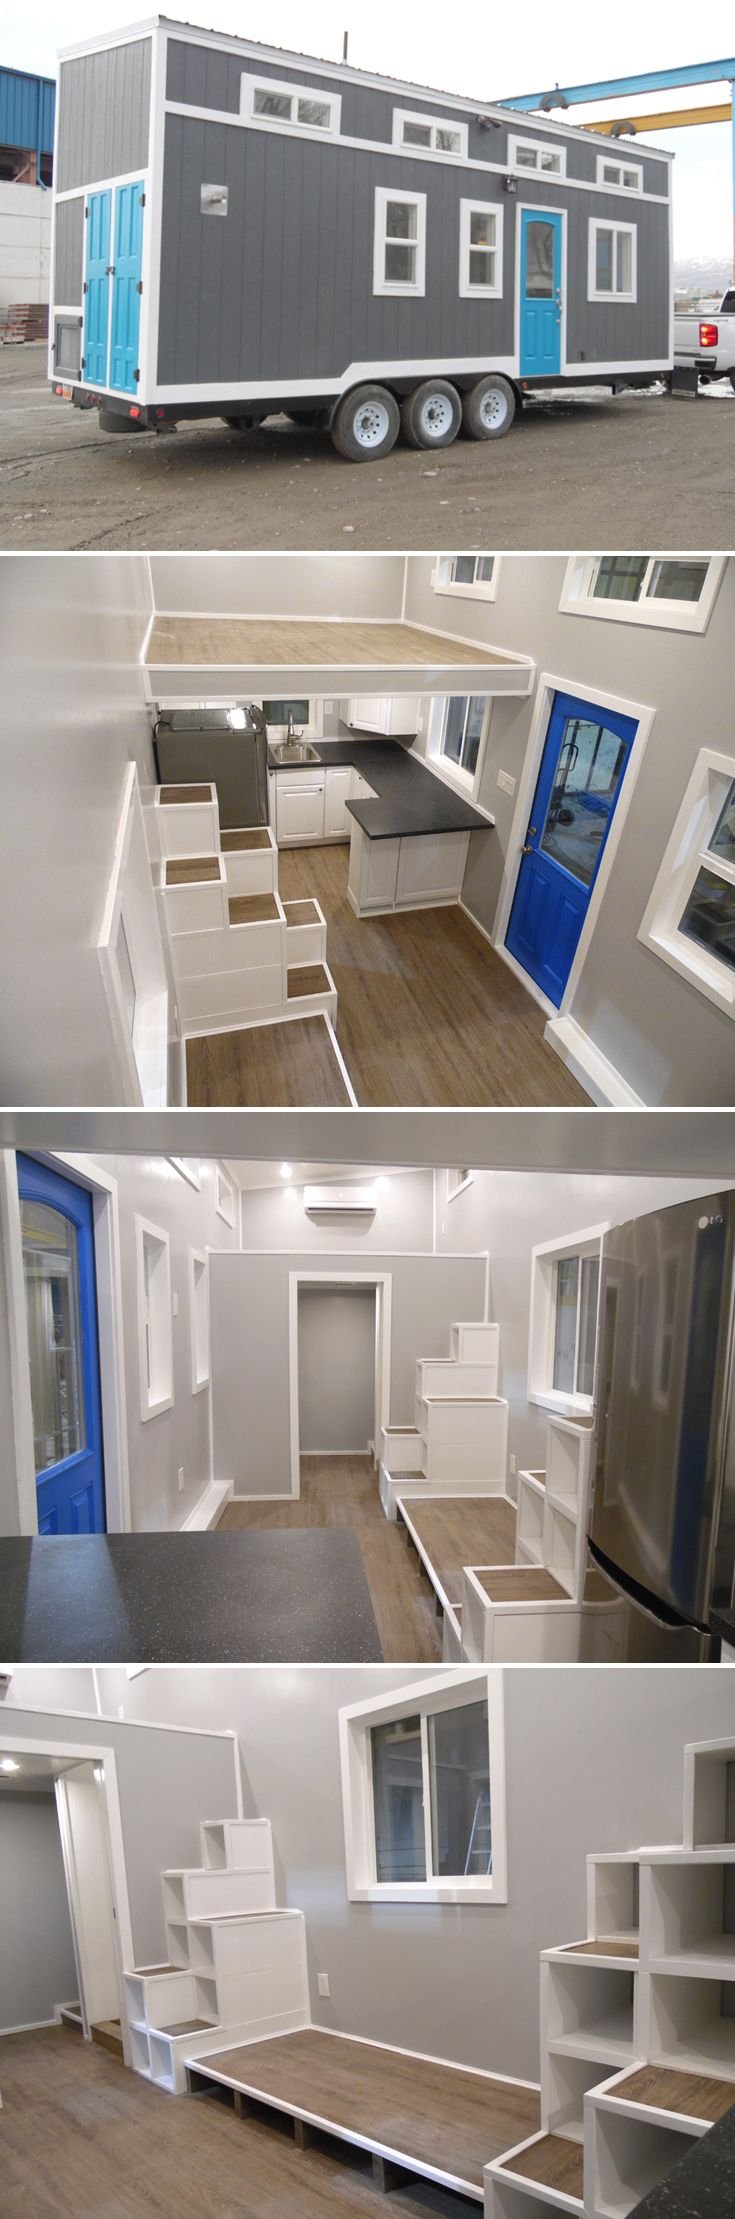 Incredible 15 Must See Tiny House Family Pins Inside Tiny Houses Mini Largest Home Design Picture Inspirations Pitcheantrous